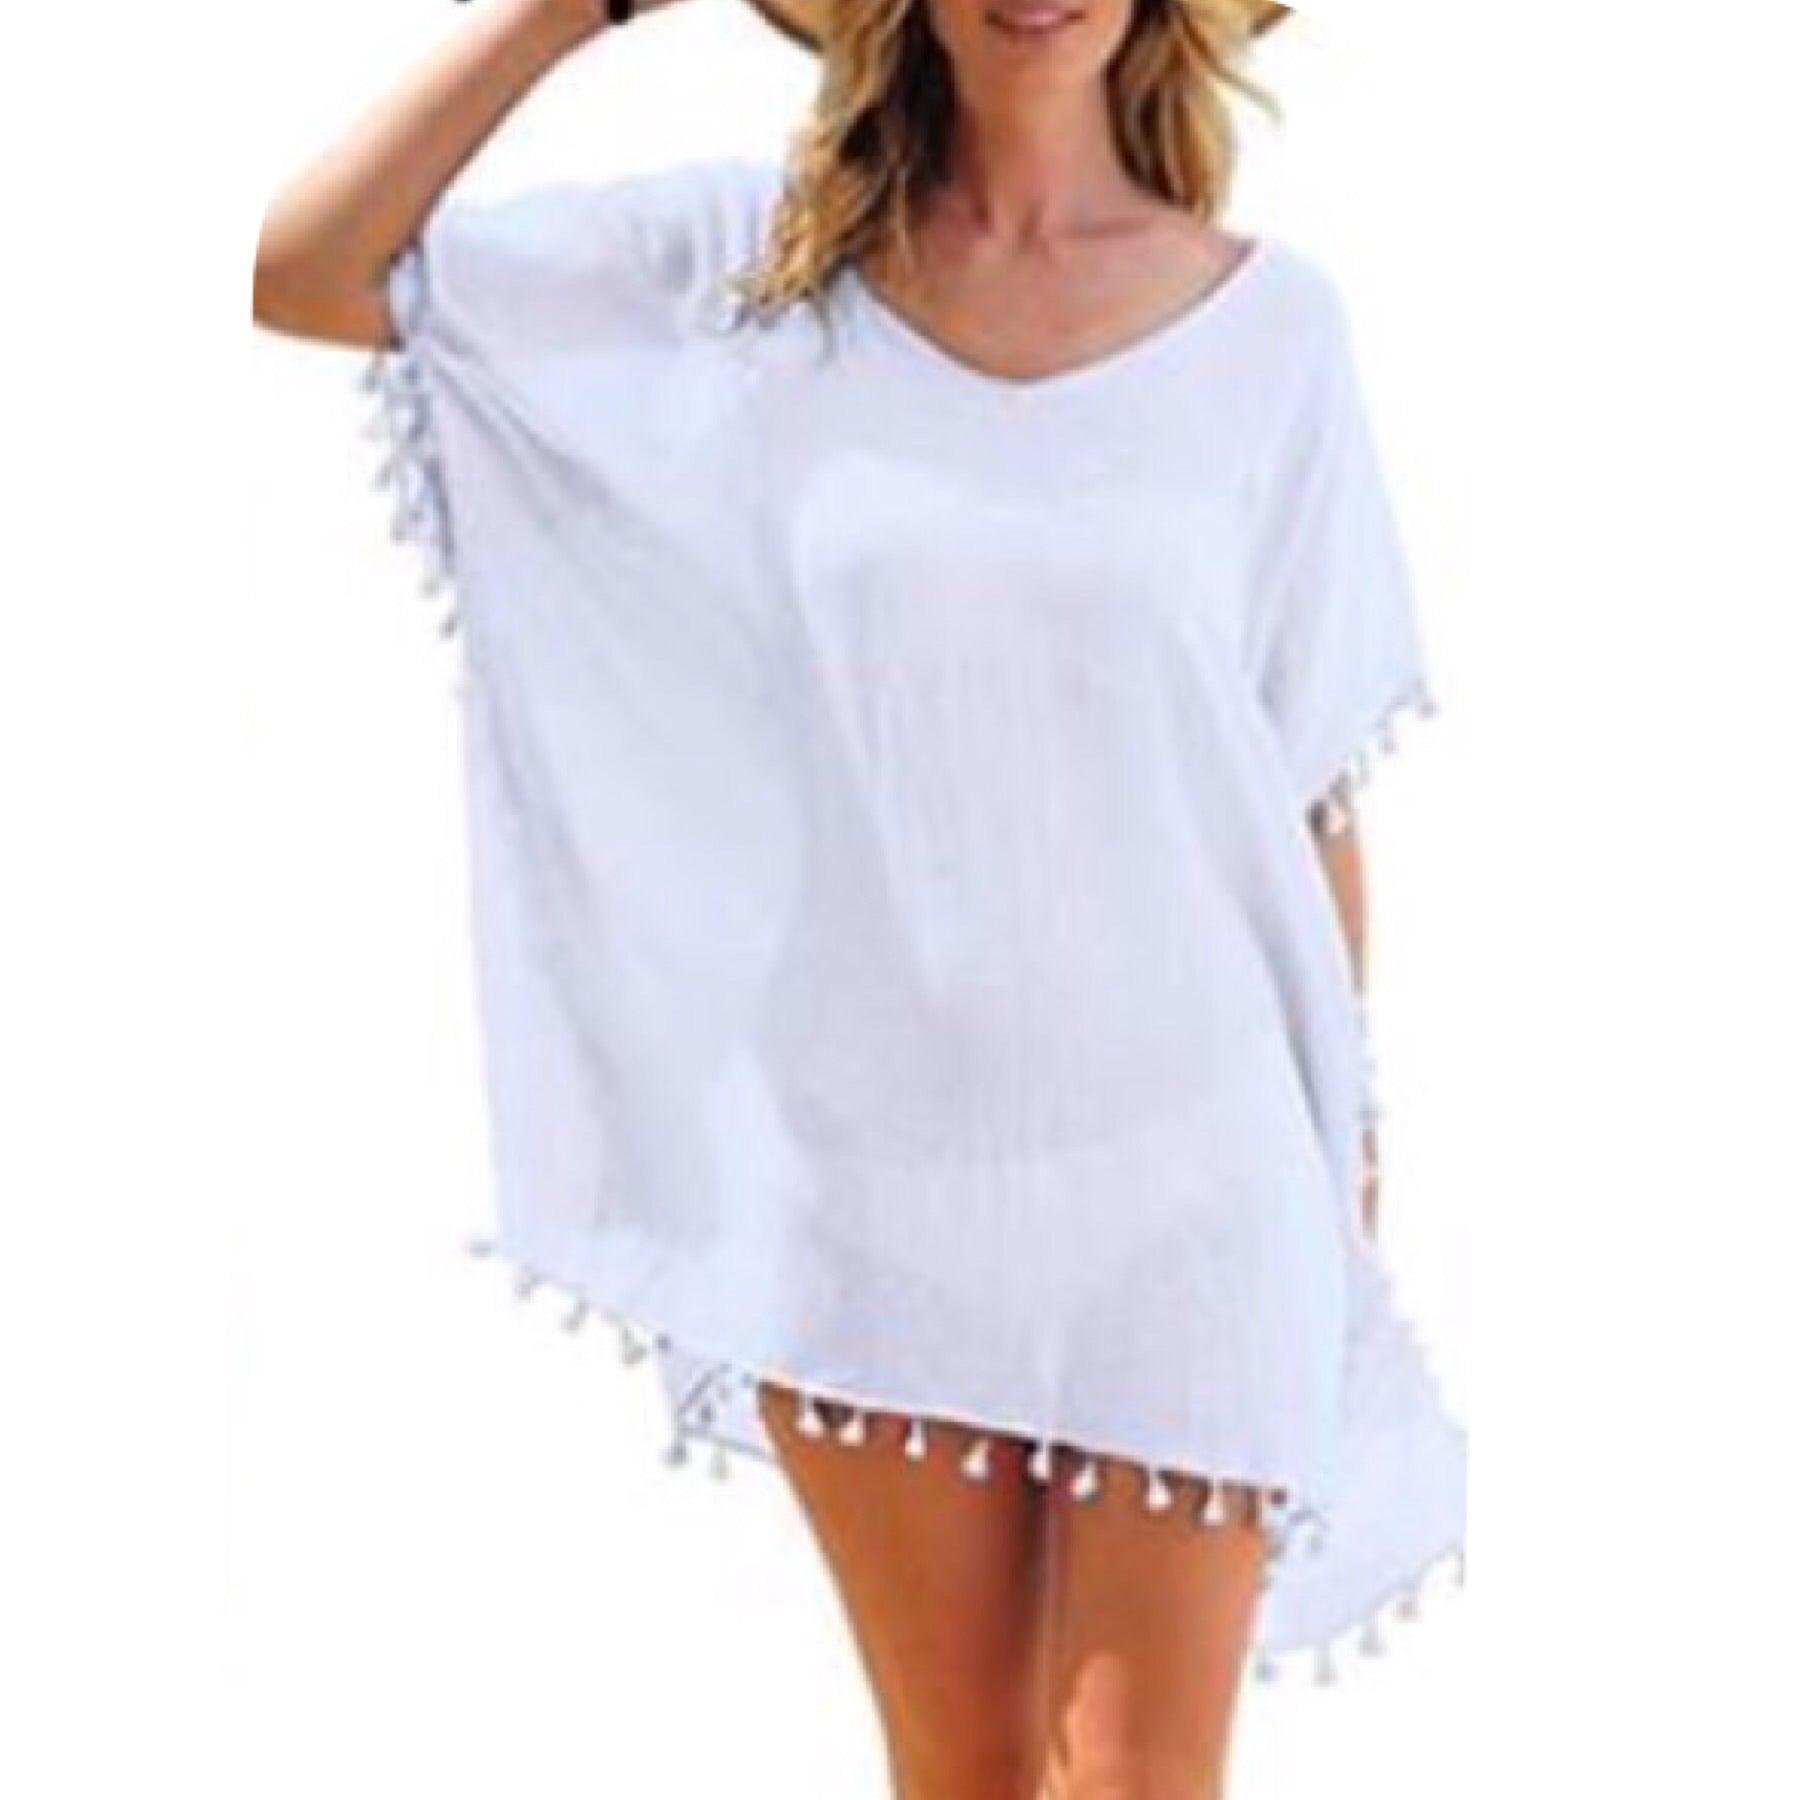 Bathing suit coverup, beach coverup